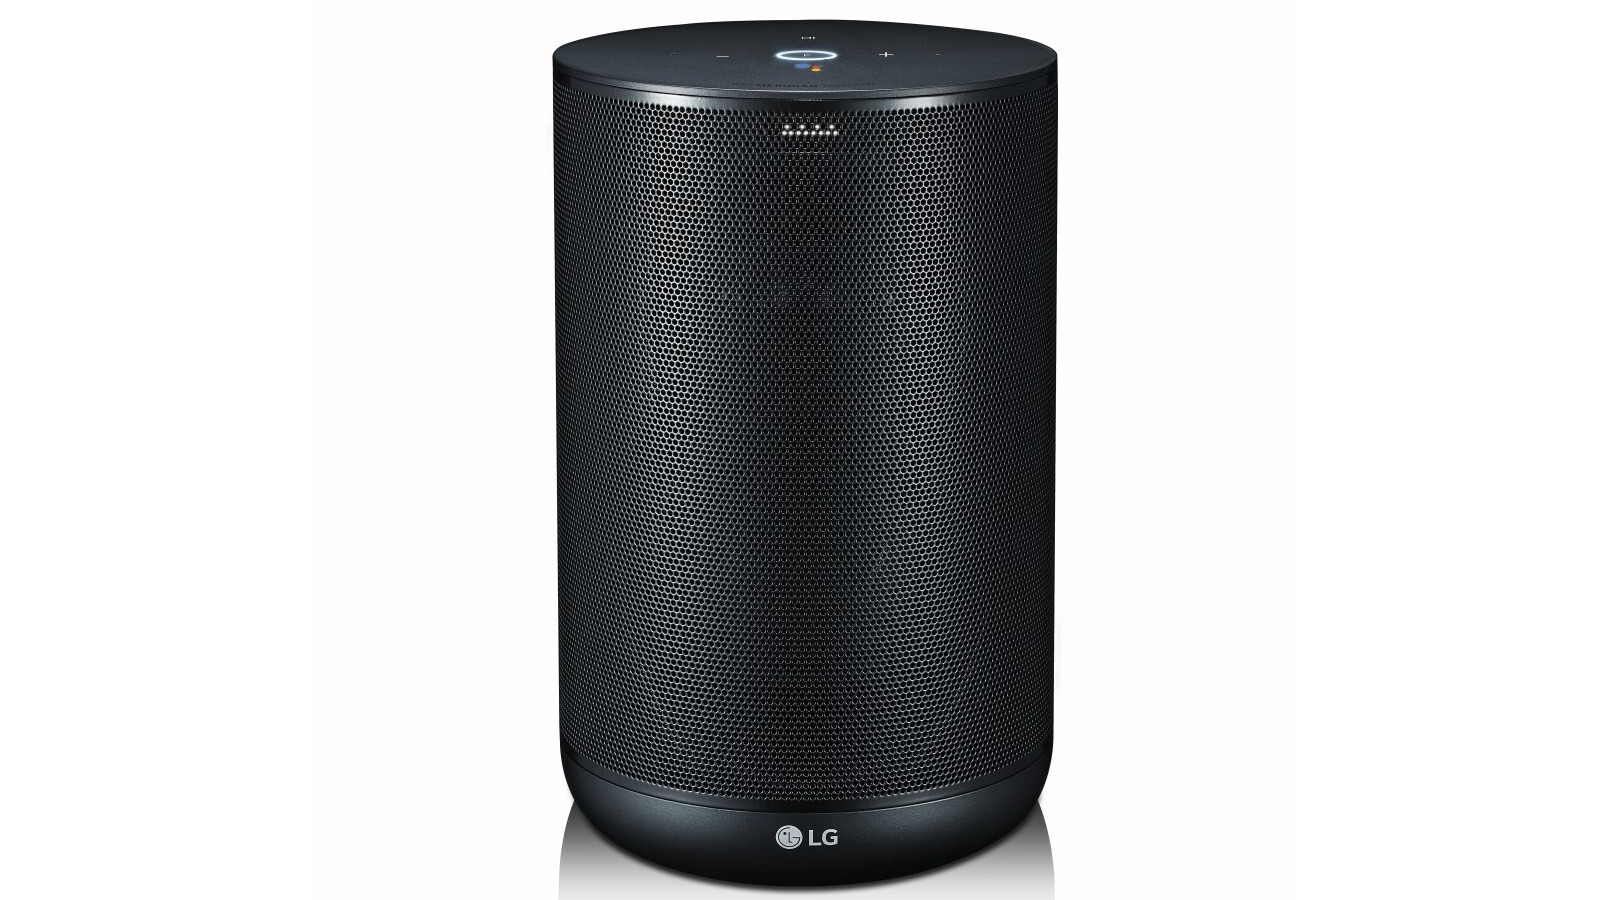 LG to unveil smart speaker lineup at CES